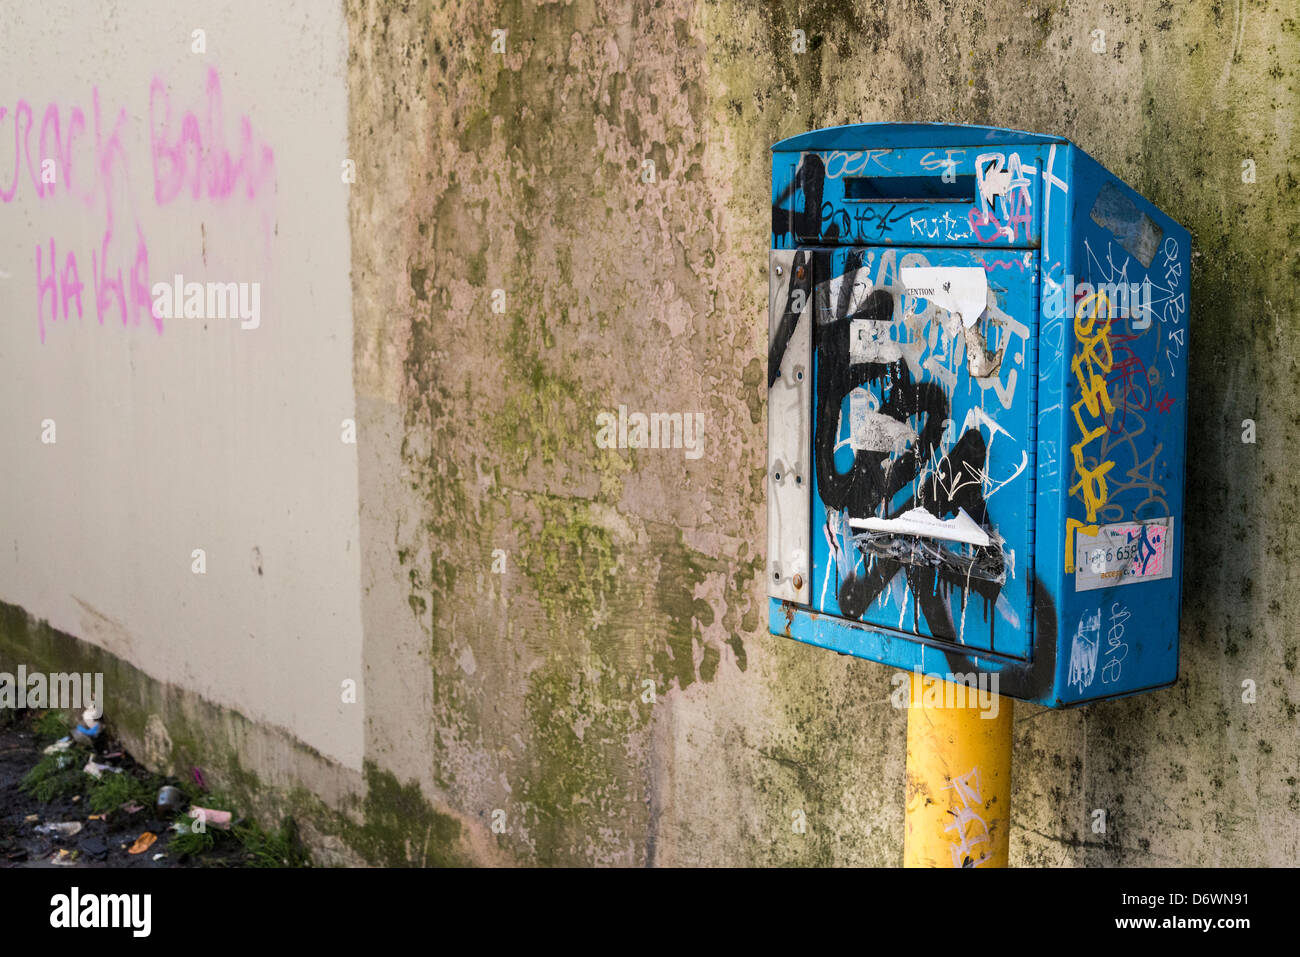 Used needle drop box, DTES, Downtown Eastside, Vancouver, British Columbia, Canada - Stock Image